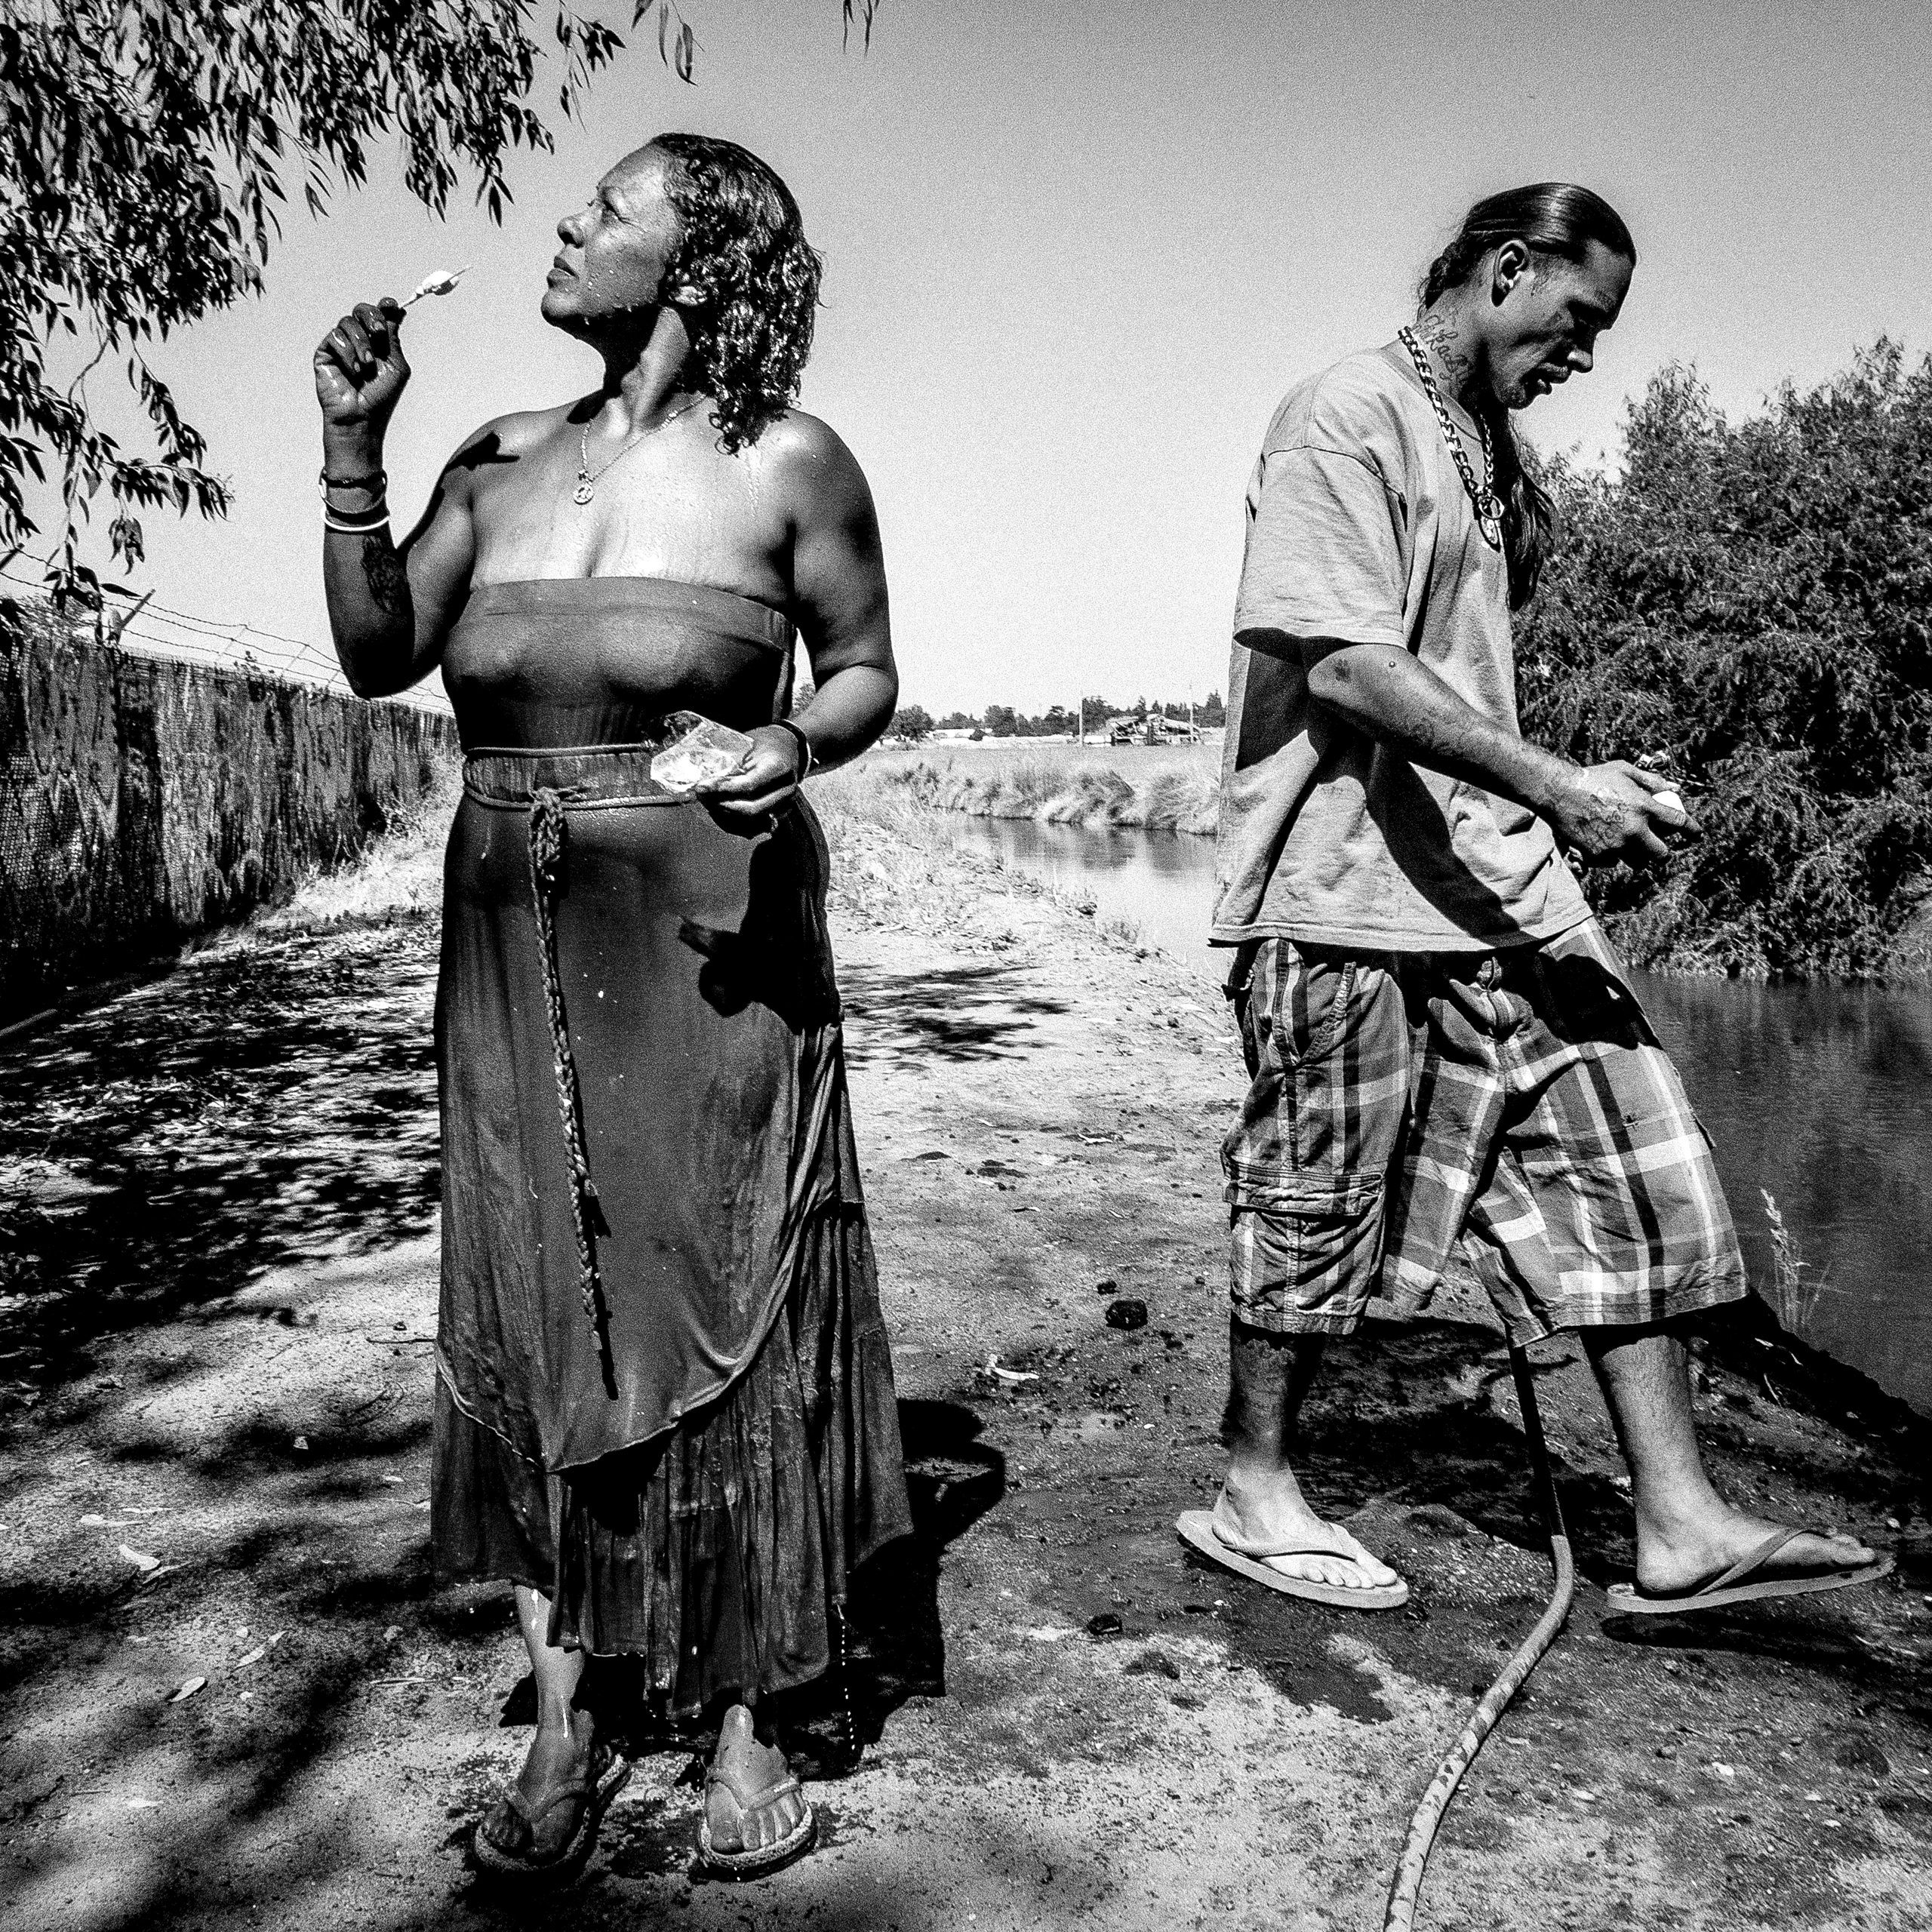 Ditchbank.  Fresno, CA.  Sinamon and Aaron bathe at an irrigation canal near their homeless encampment on the outskirts of Fresno.